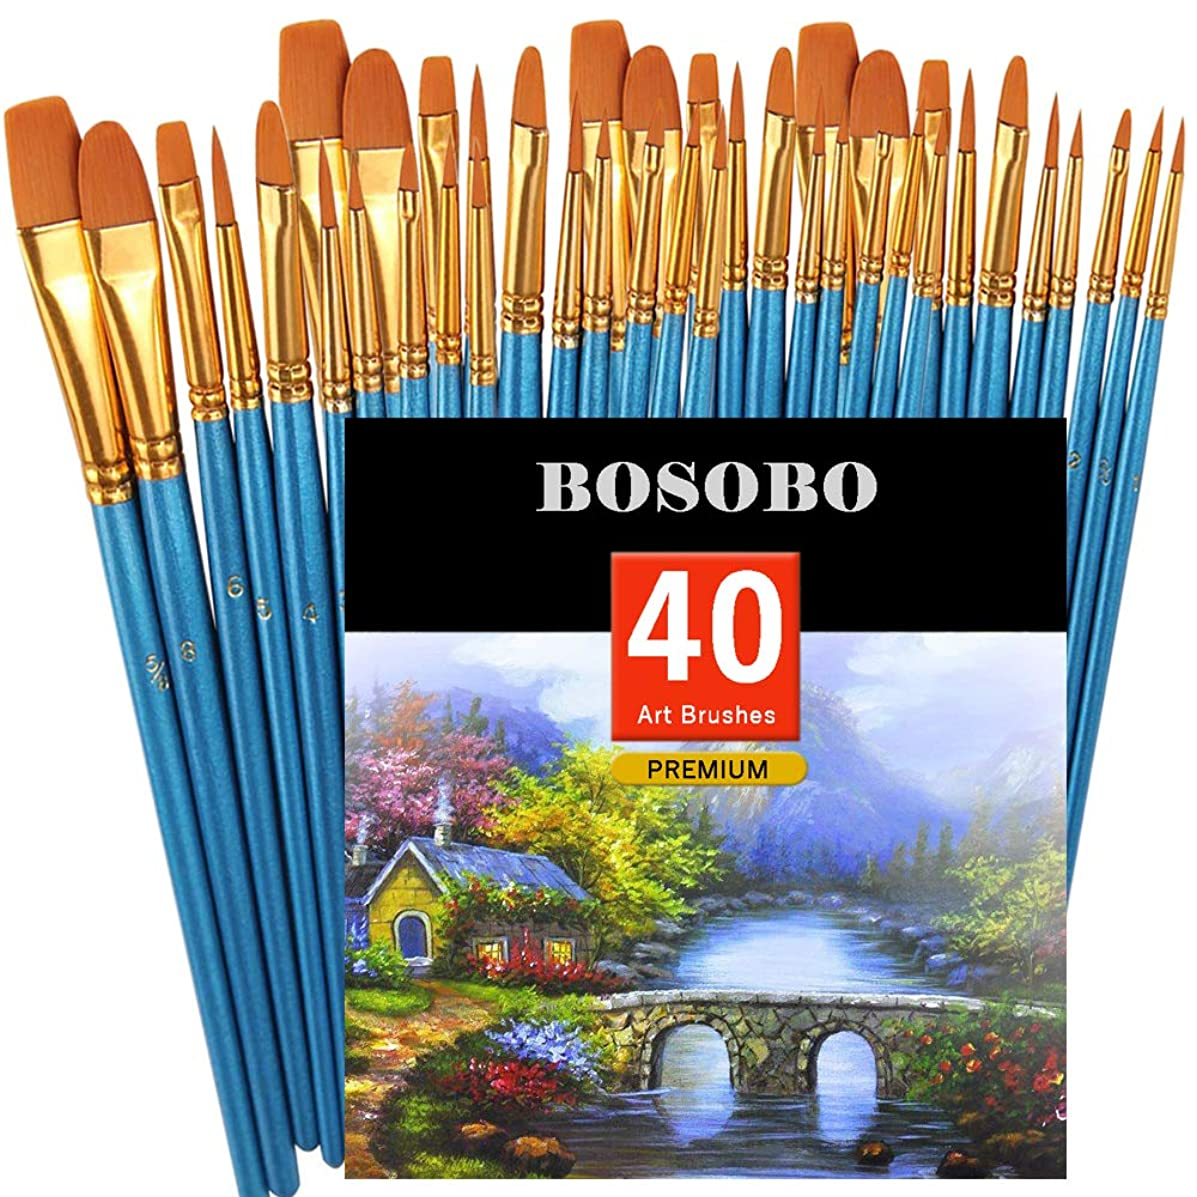 BOSOBO Pointed-Round Paint Brush, 4 Sets of 10 Pieces Fine Tip Nylon Hair Miniature Paint Brushes for Acrylic Oil Watercolor Gouache, Artist Face Nail Body, Paint by Numbers, Model Craft & Rock Art